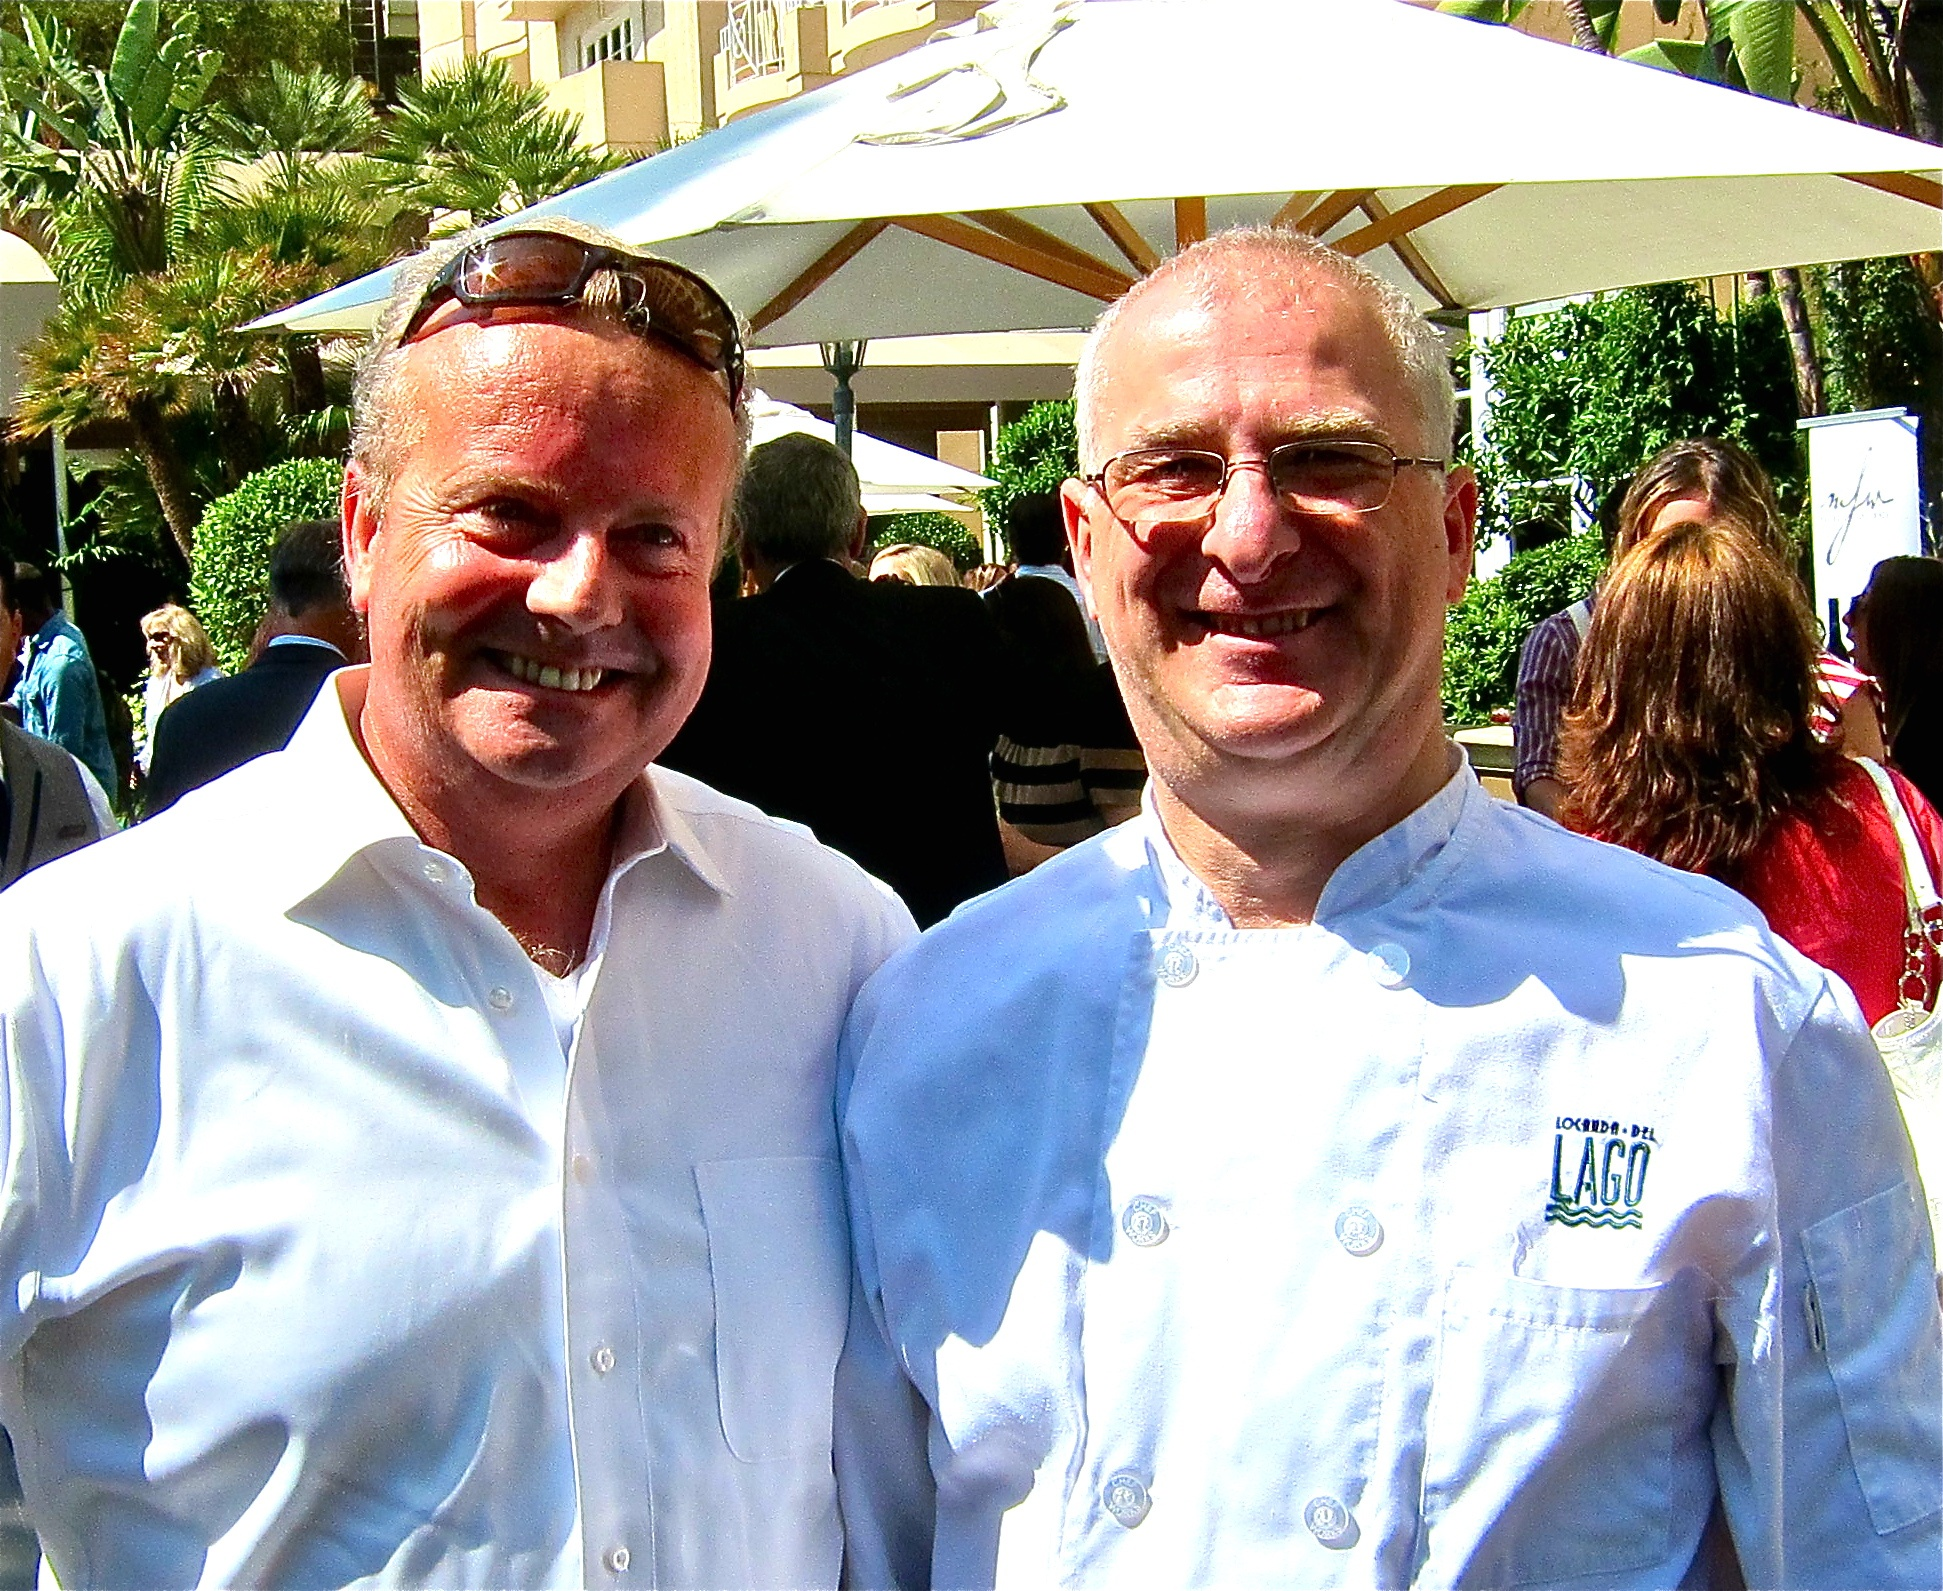 Santa Monica's Locanda del Lago owner and chef